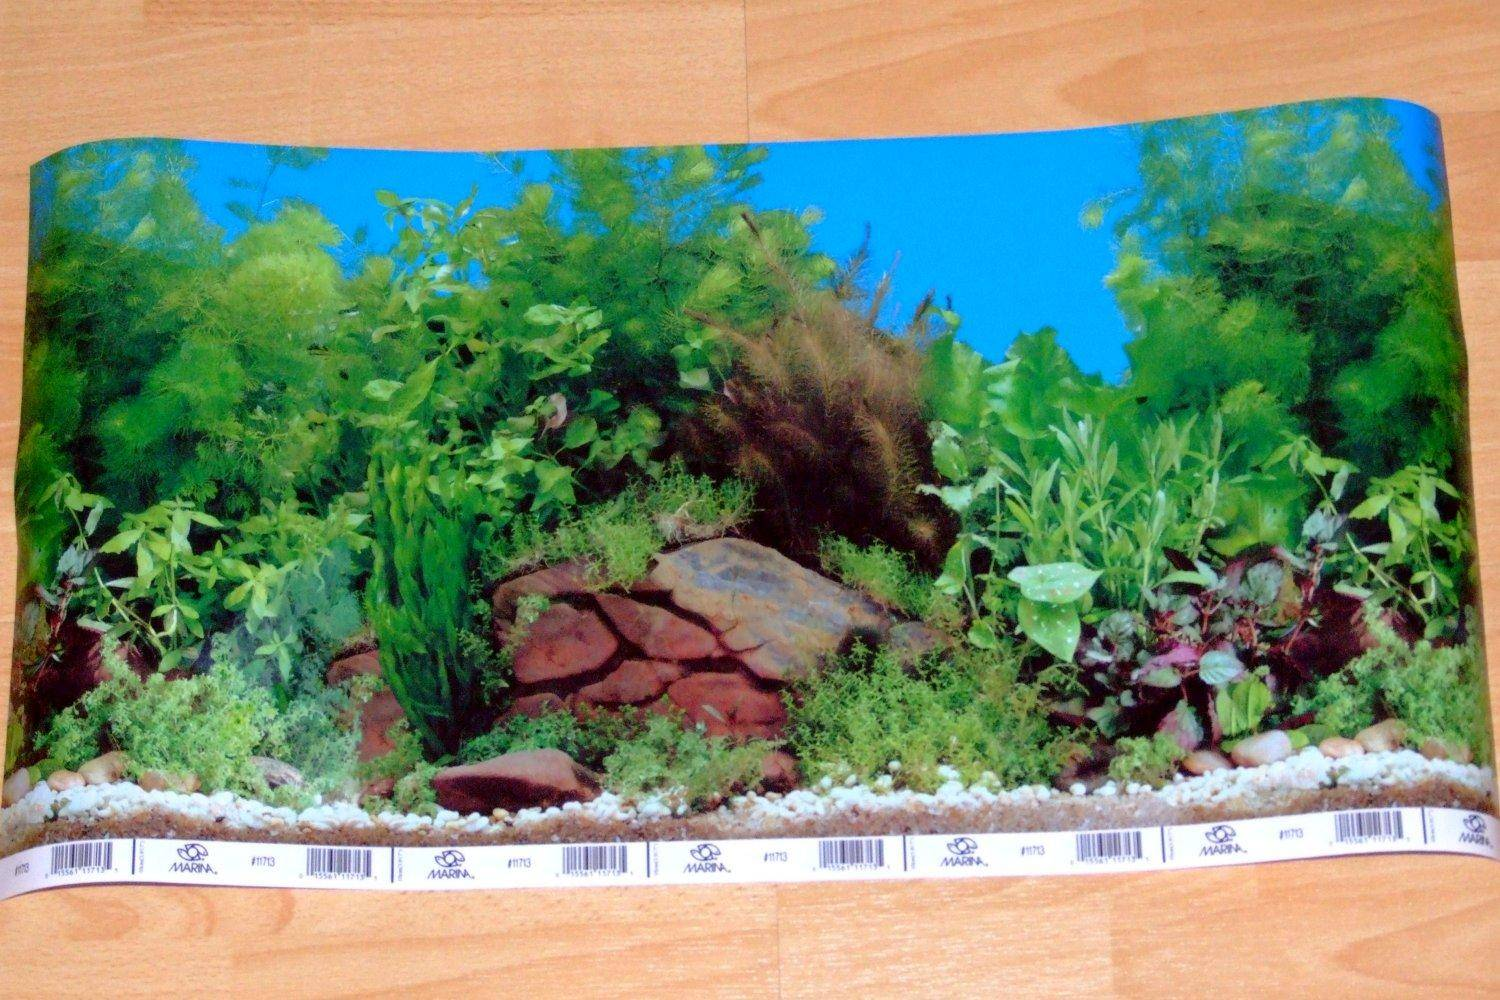 Fish tank painting - Aquarium Background Resized Image 1